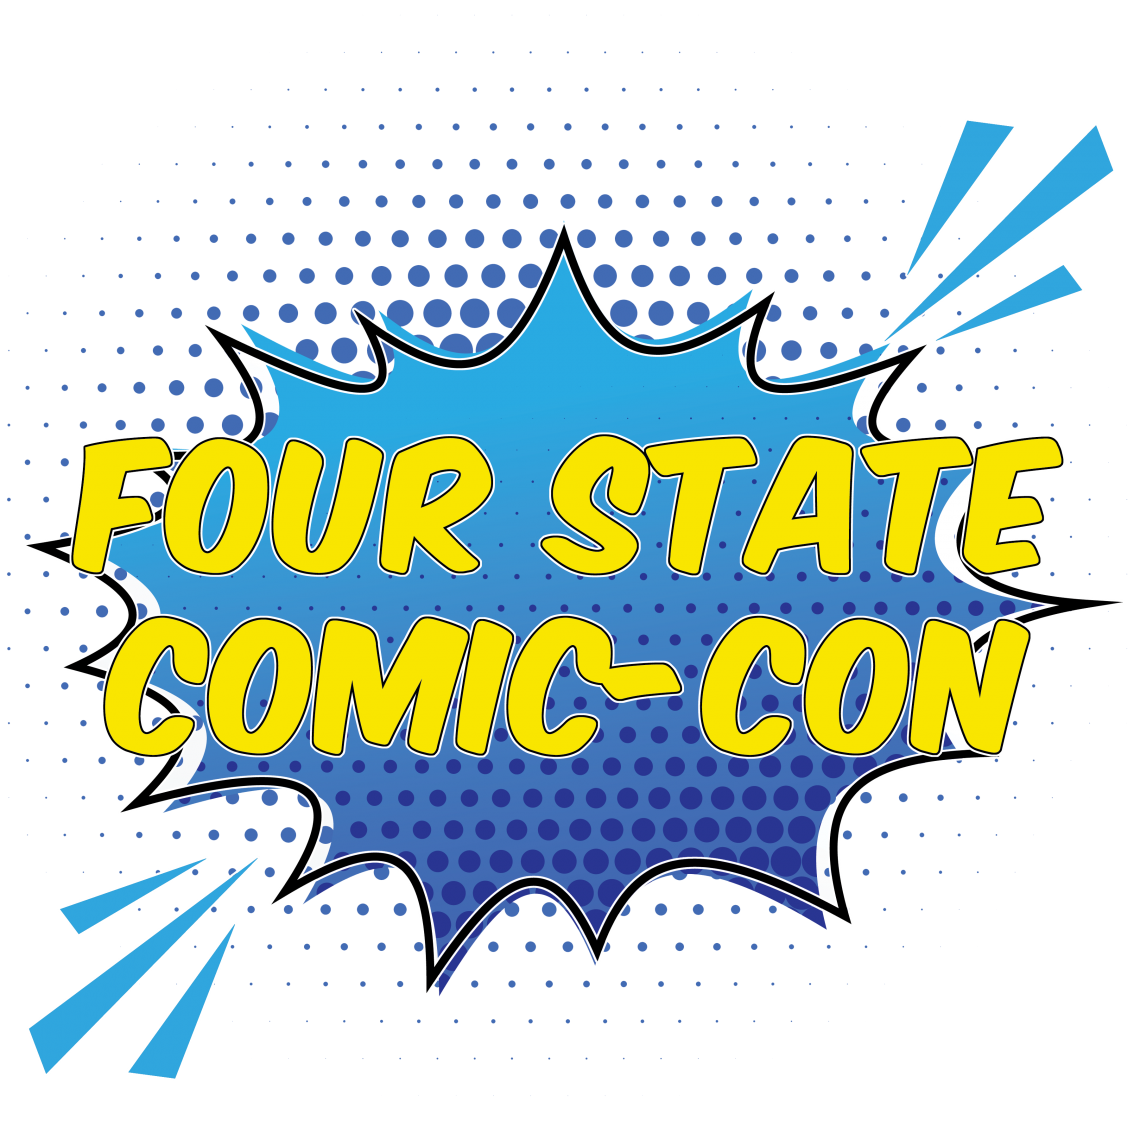 Four State Comic Con logo